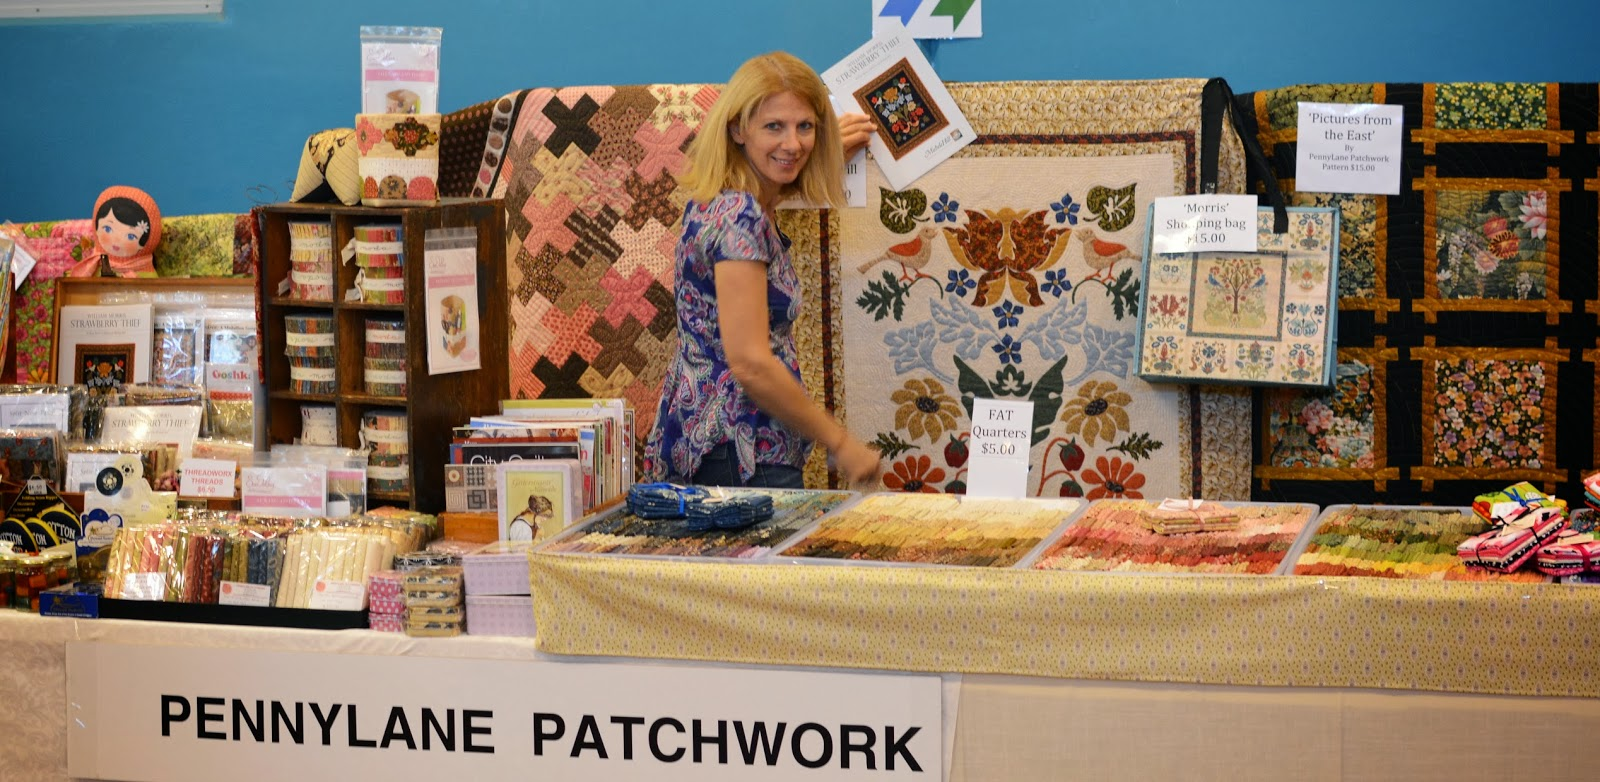 Pennylane Patchwork Day One Toowoomba Quilt Show